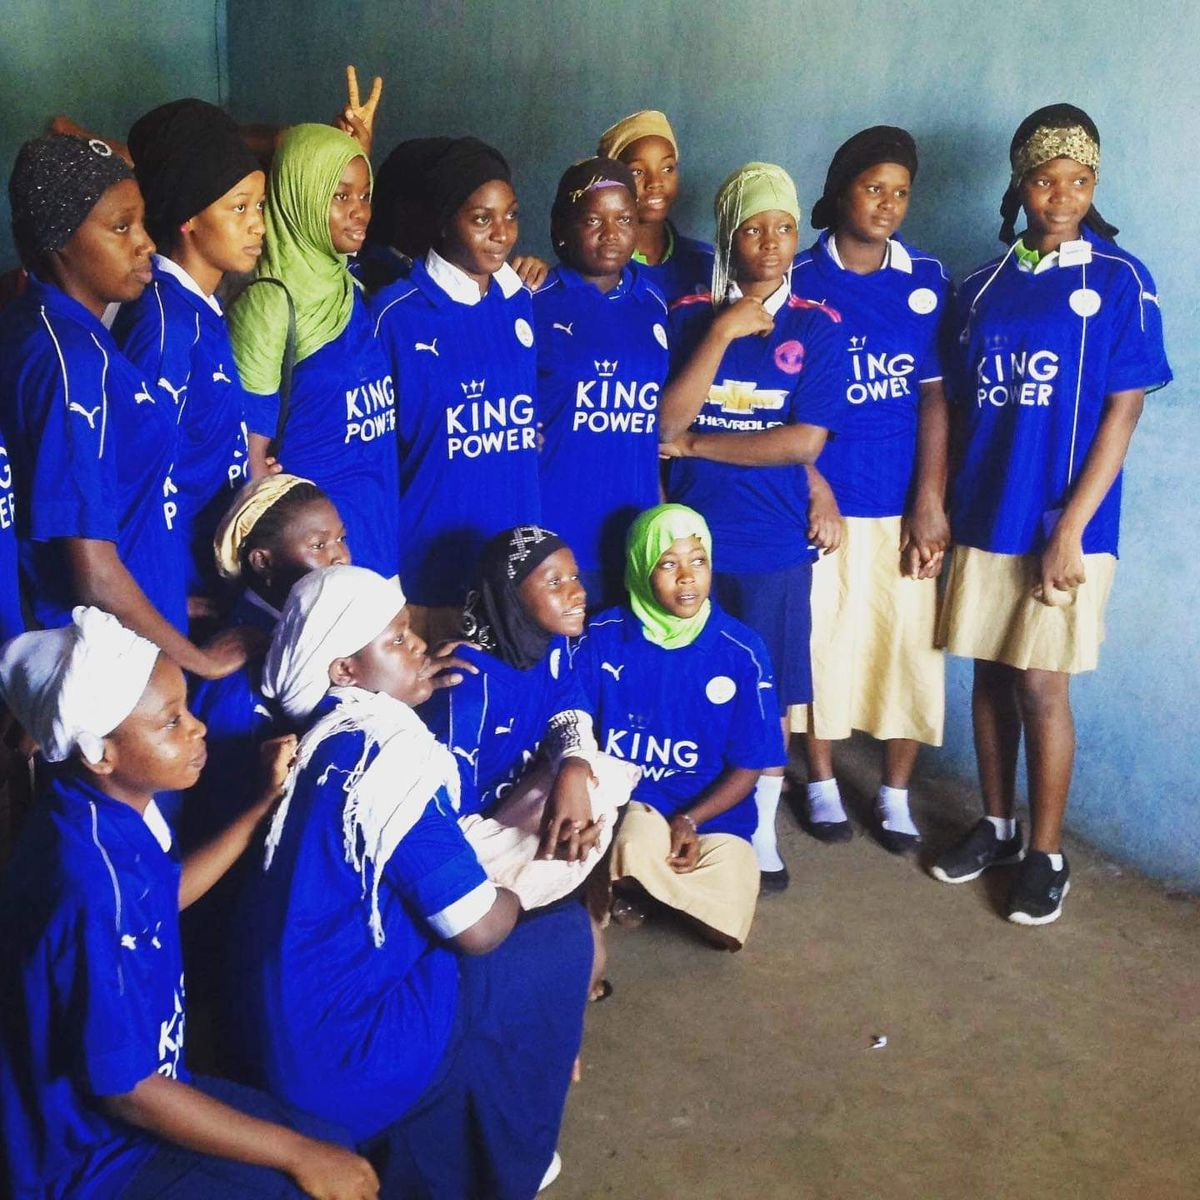 Leicester City kits were also donated